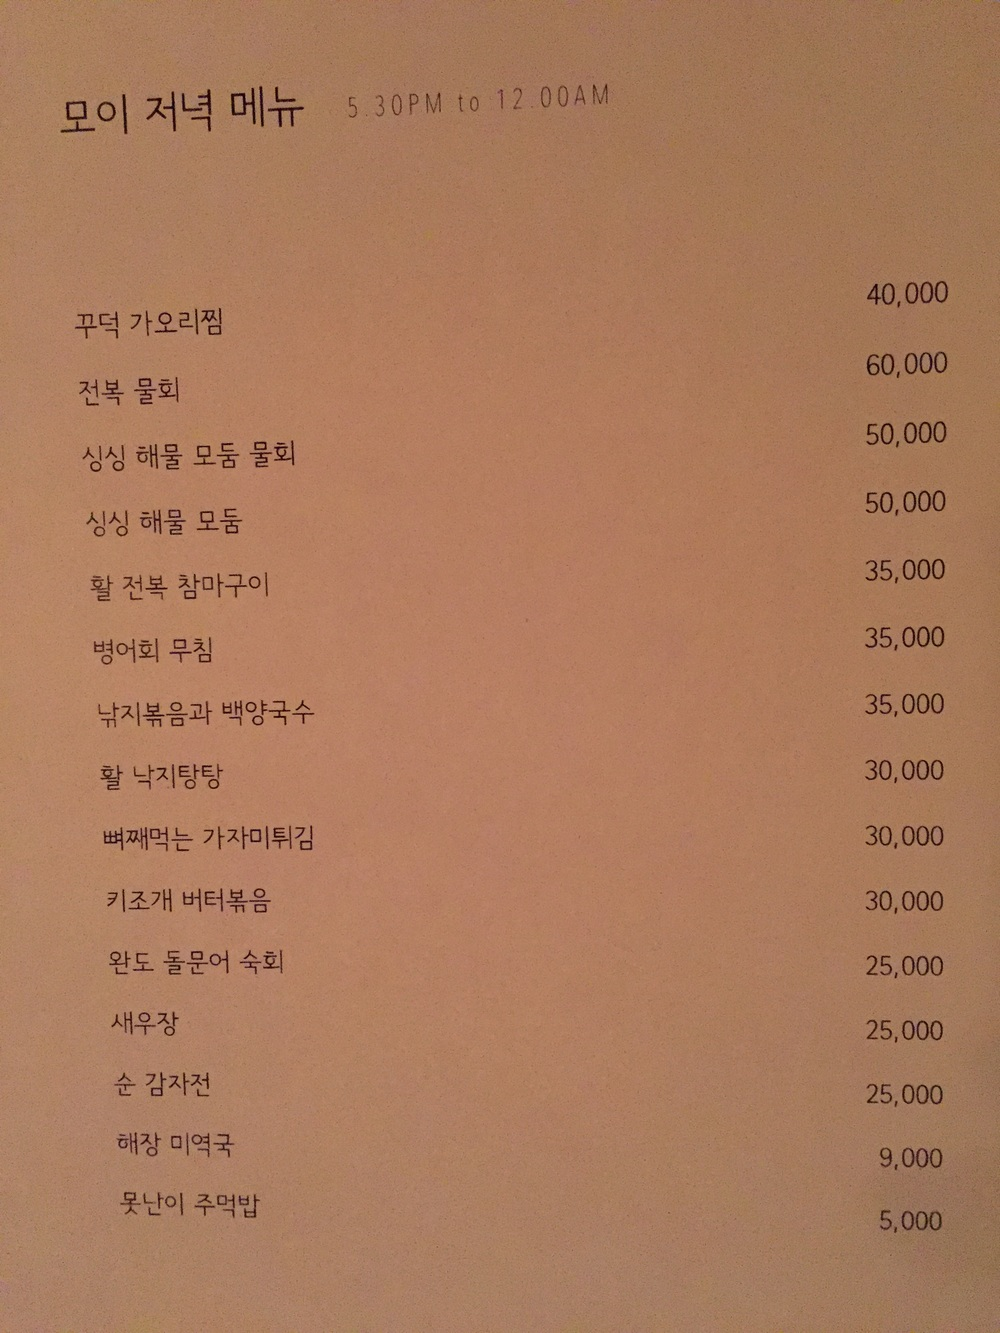 The Hannam location's menu is all in only Korean, but their newly opened Itaewon location has English translations on their menu.